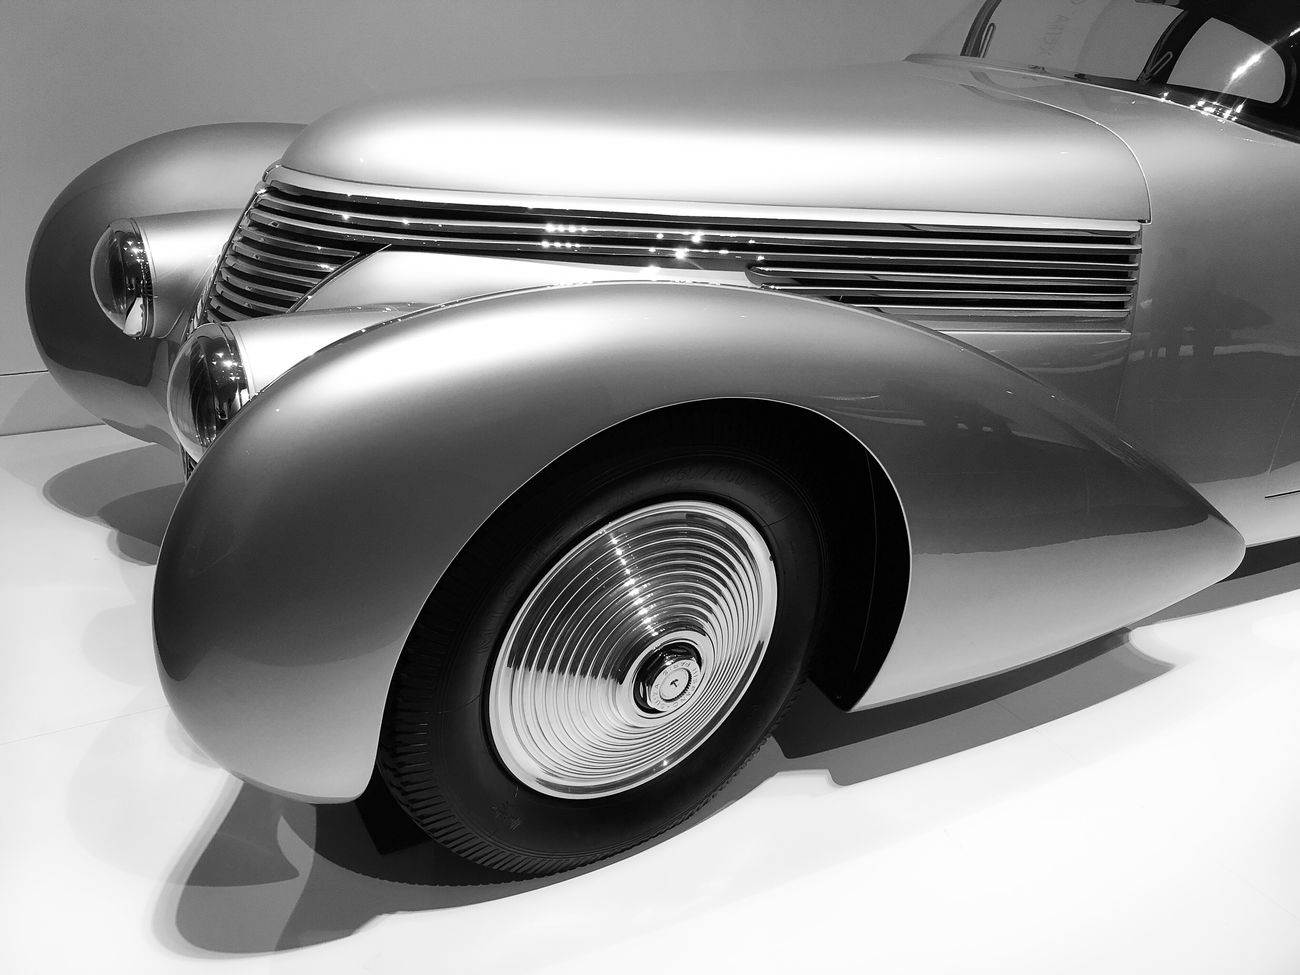 Car Retro Styled Tire Silver  Chrome Classic Car Vintage Sculpted Automobile Retro Car Streamlined Art Deco Vintage Car Art Deco Design Sculpted Metal Sculpted In Steel Museum Piece Retro EyeEmNewHere EyeEm Best Shots Retro Style Collector's Car Wheels Transportation Classic